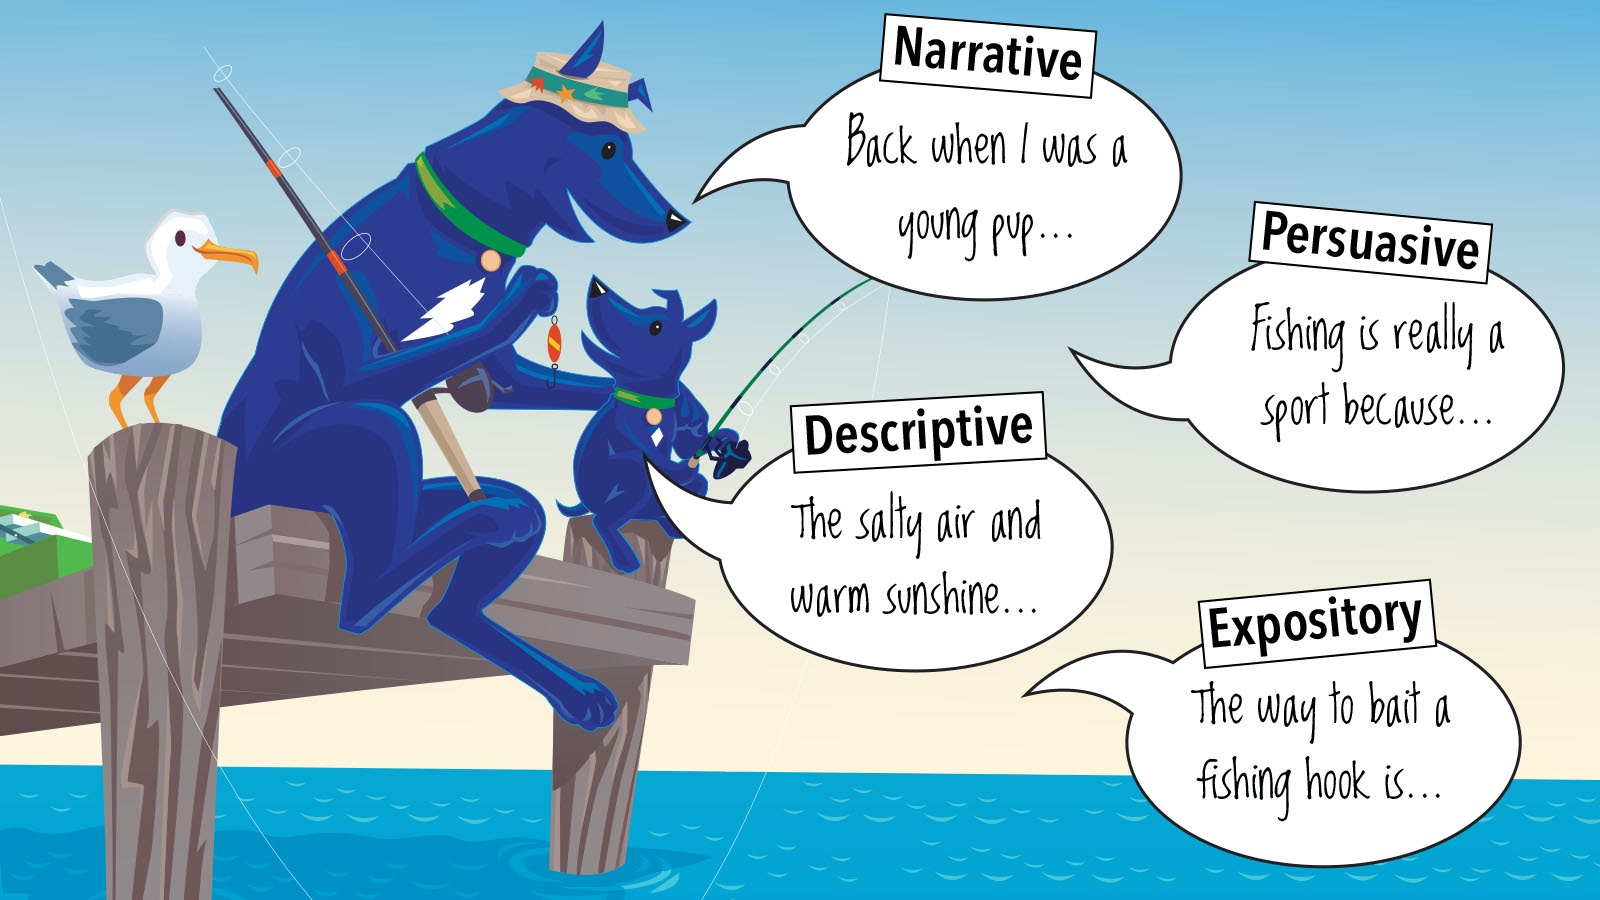 narrative, descriptive, persuasive, expository writing styles